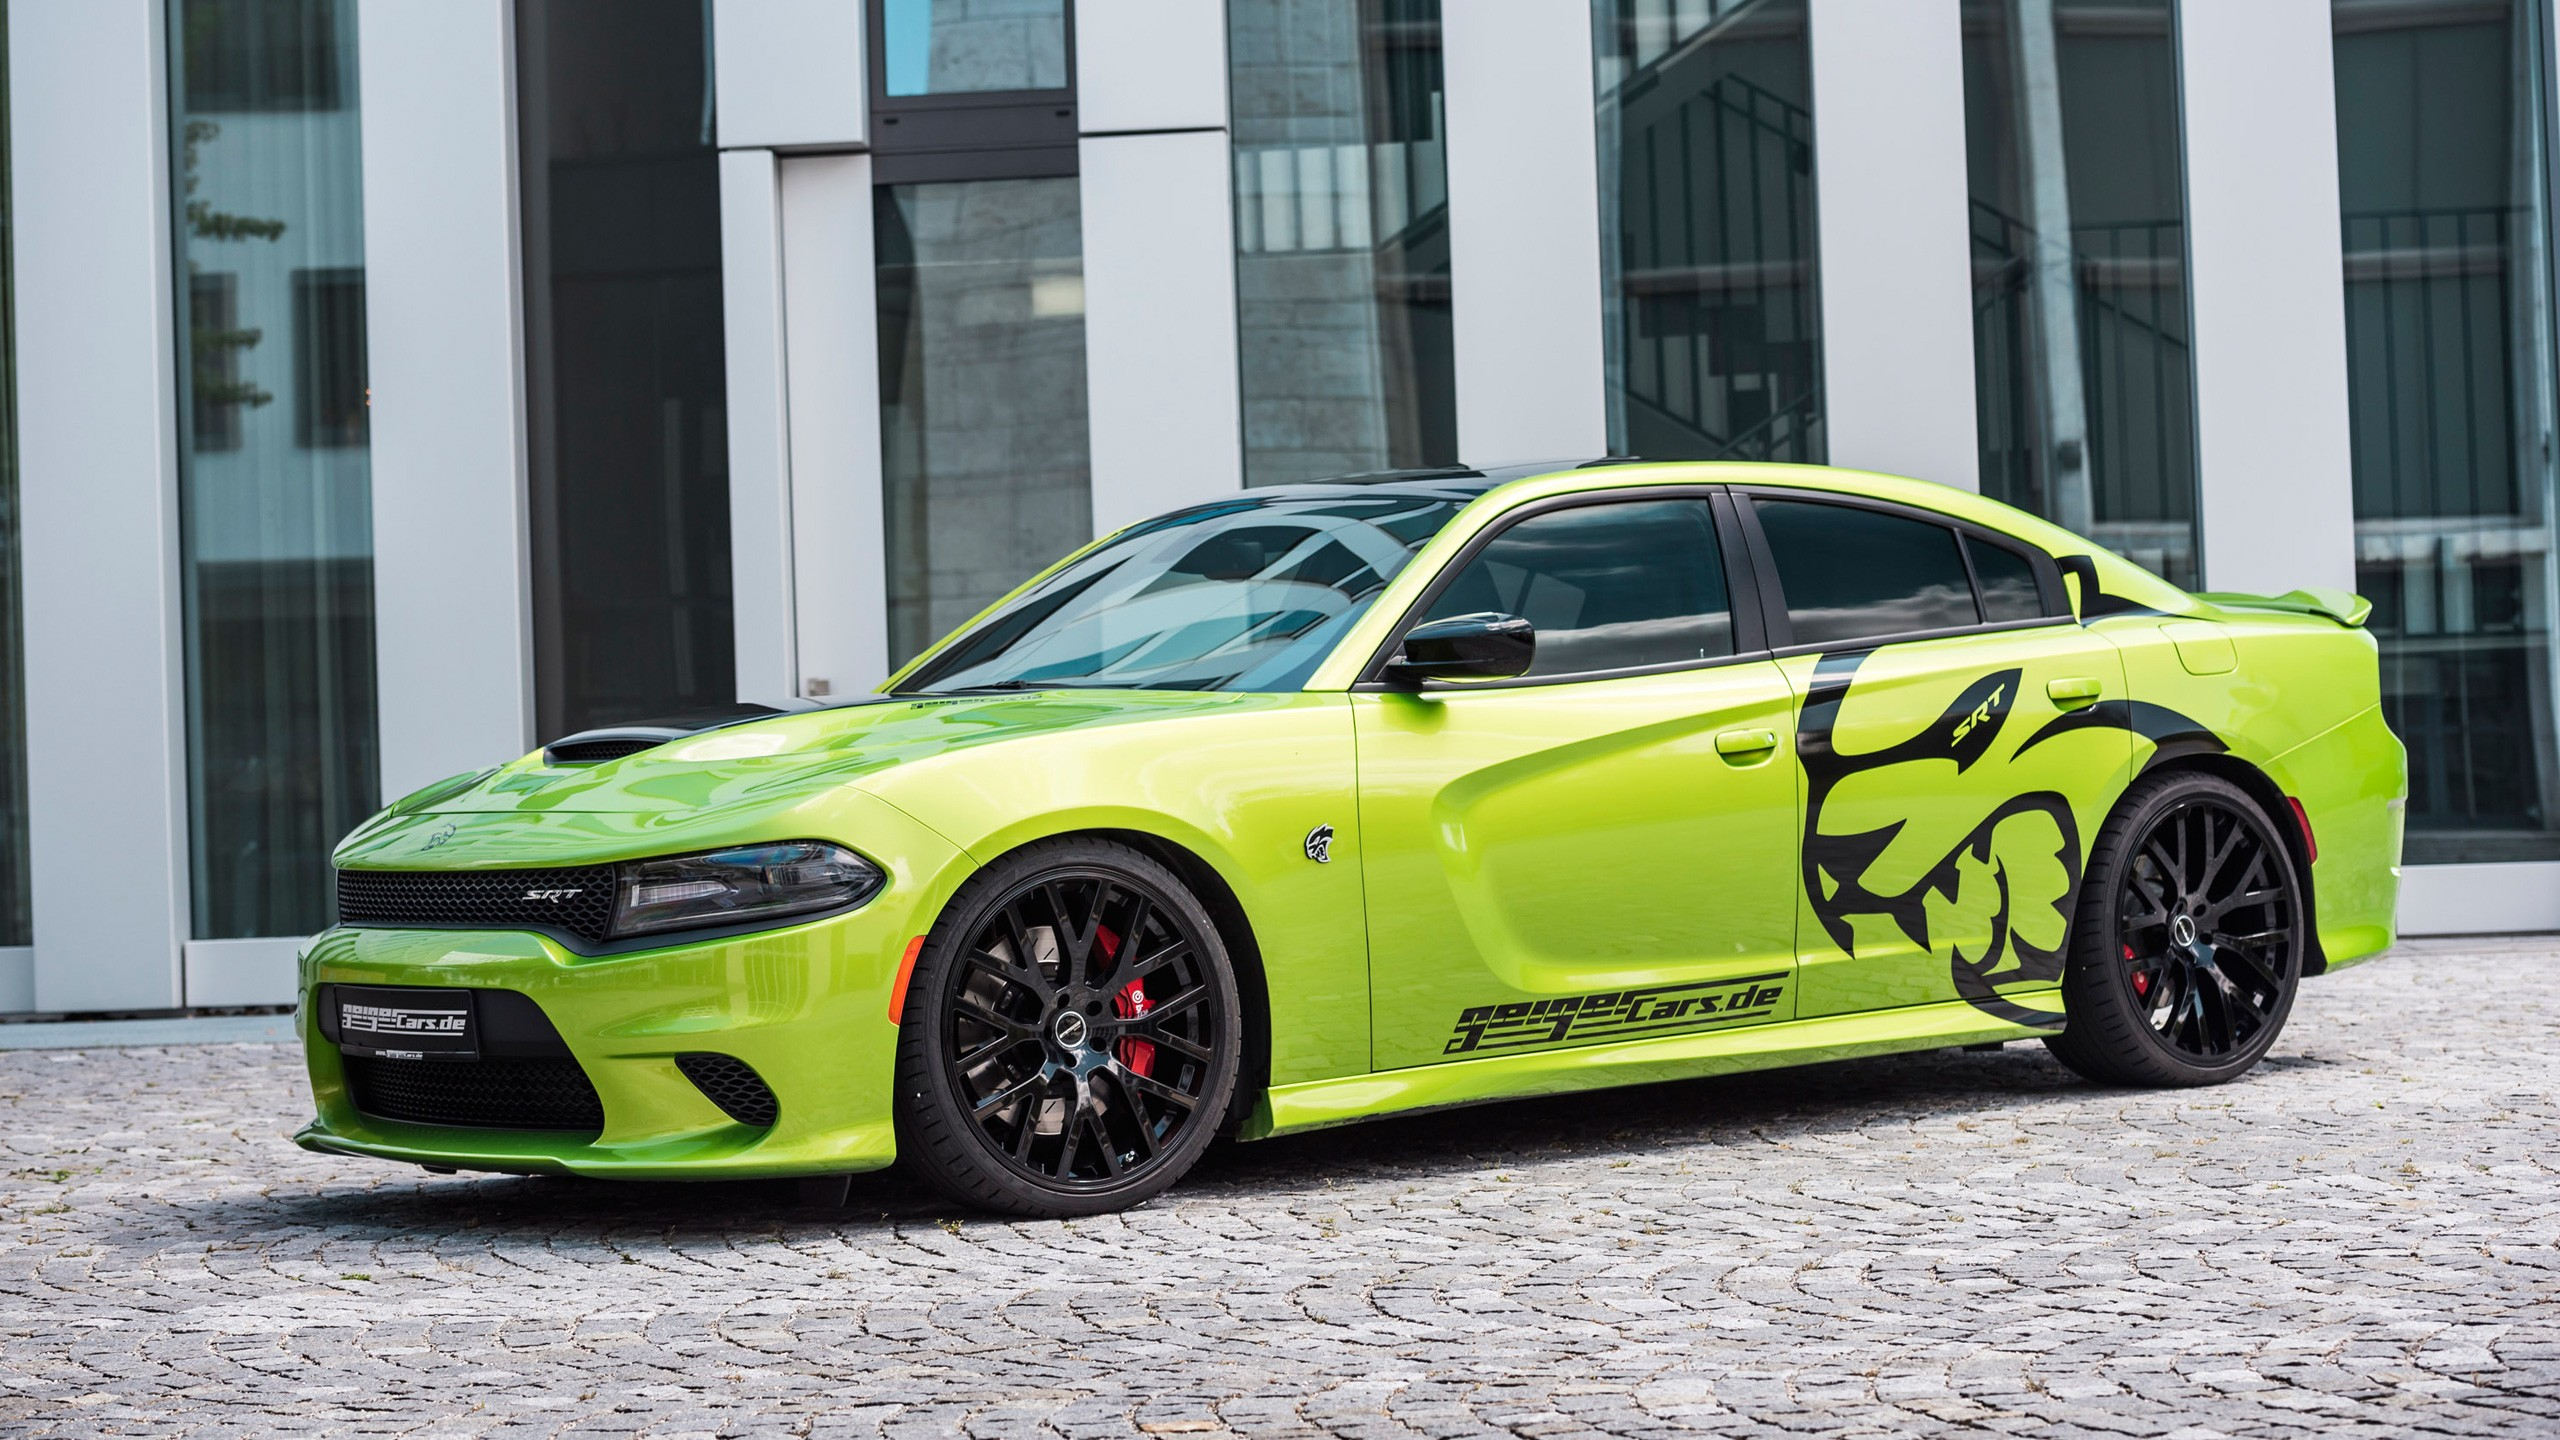 2016 Geigercars Dodge Charger Srt Hellcat Wallpaper Hd